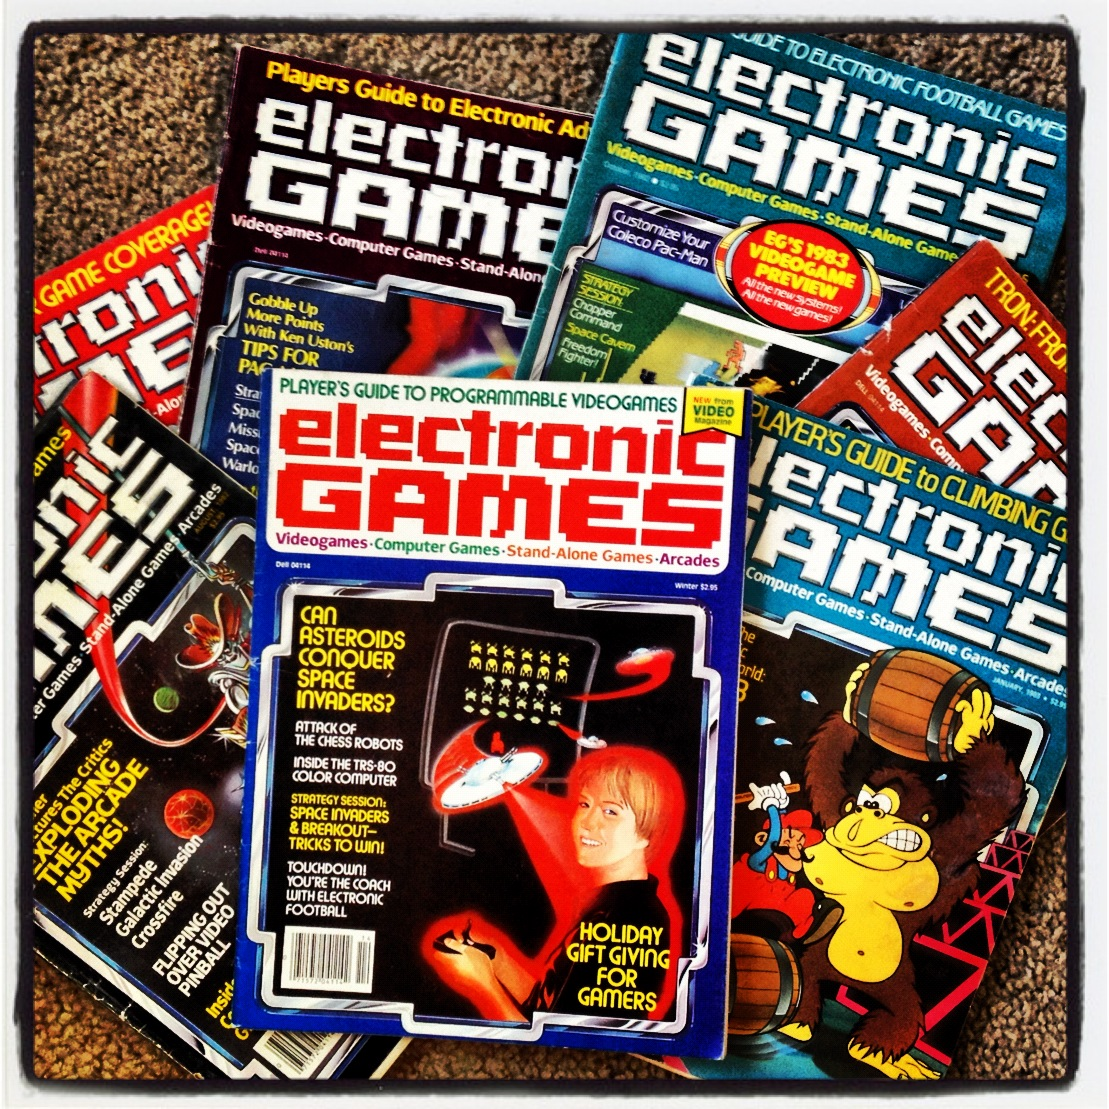 Neato Coolville: SCI-FI ART FROM ELECTRONIC GAMES MAGAZINE